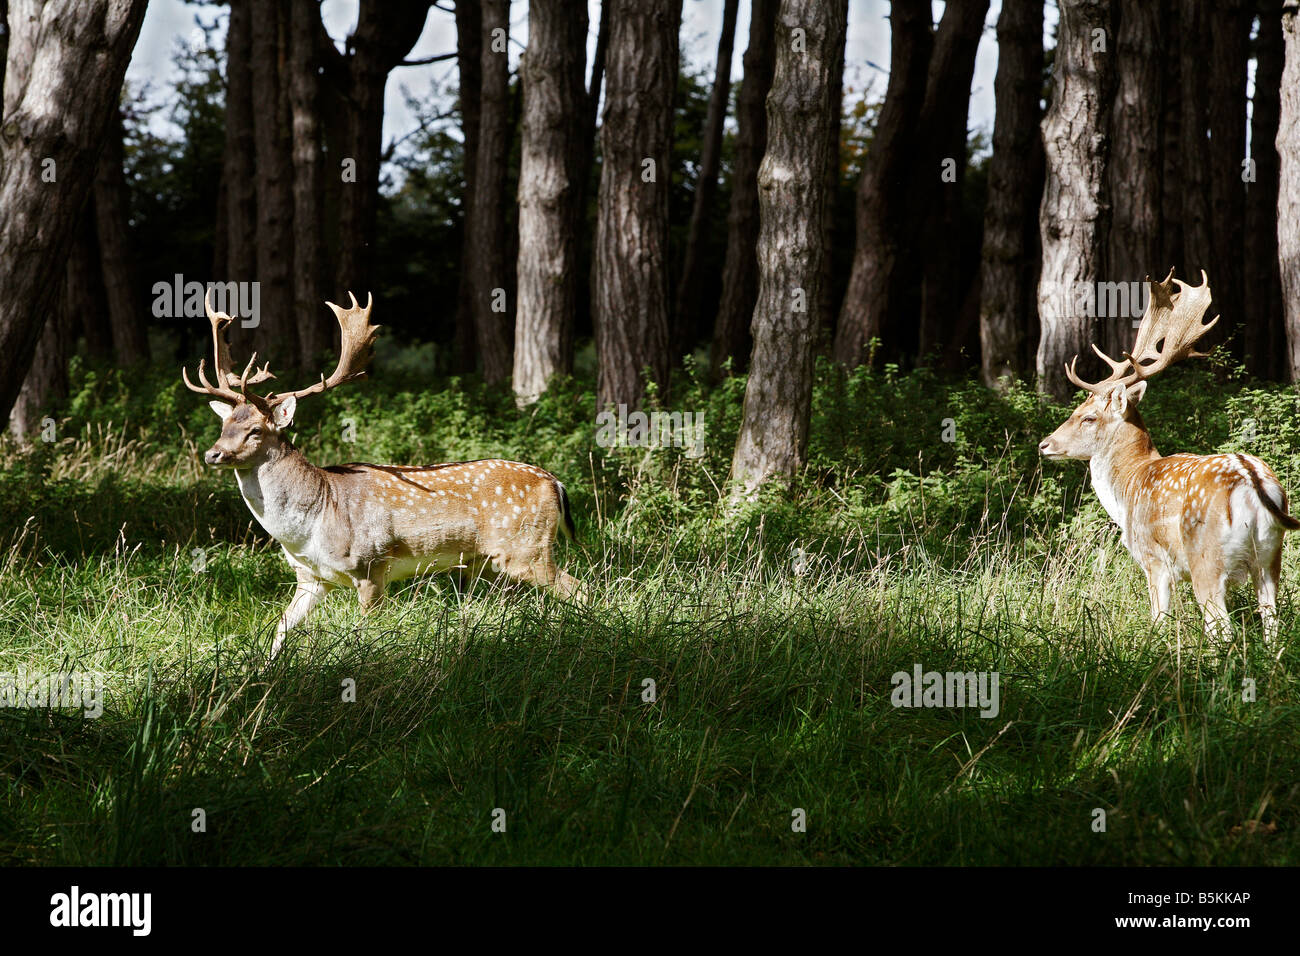 Wild Deer In The Phoenix Park Dublin 8 Ireland Stock Photo